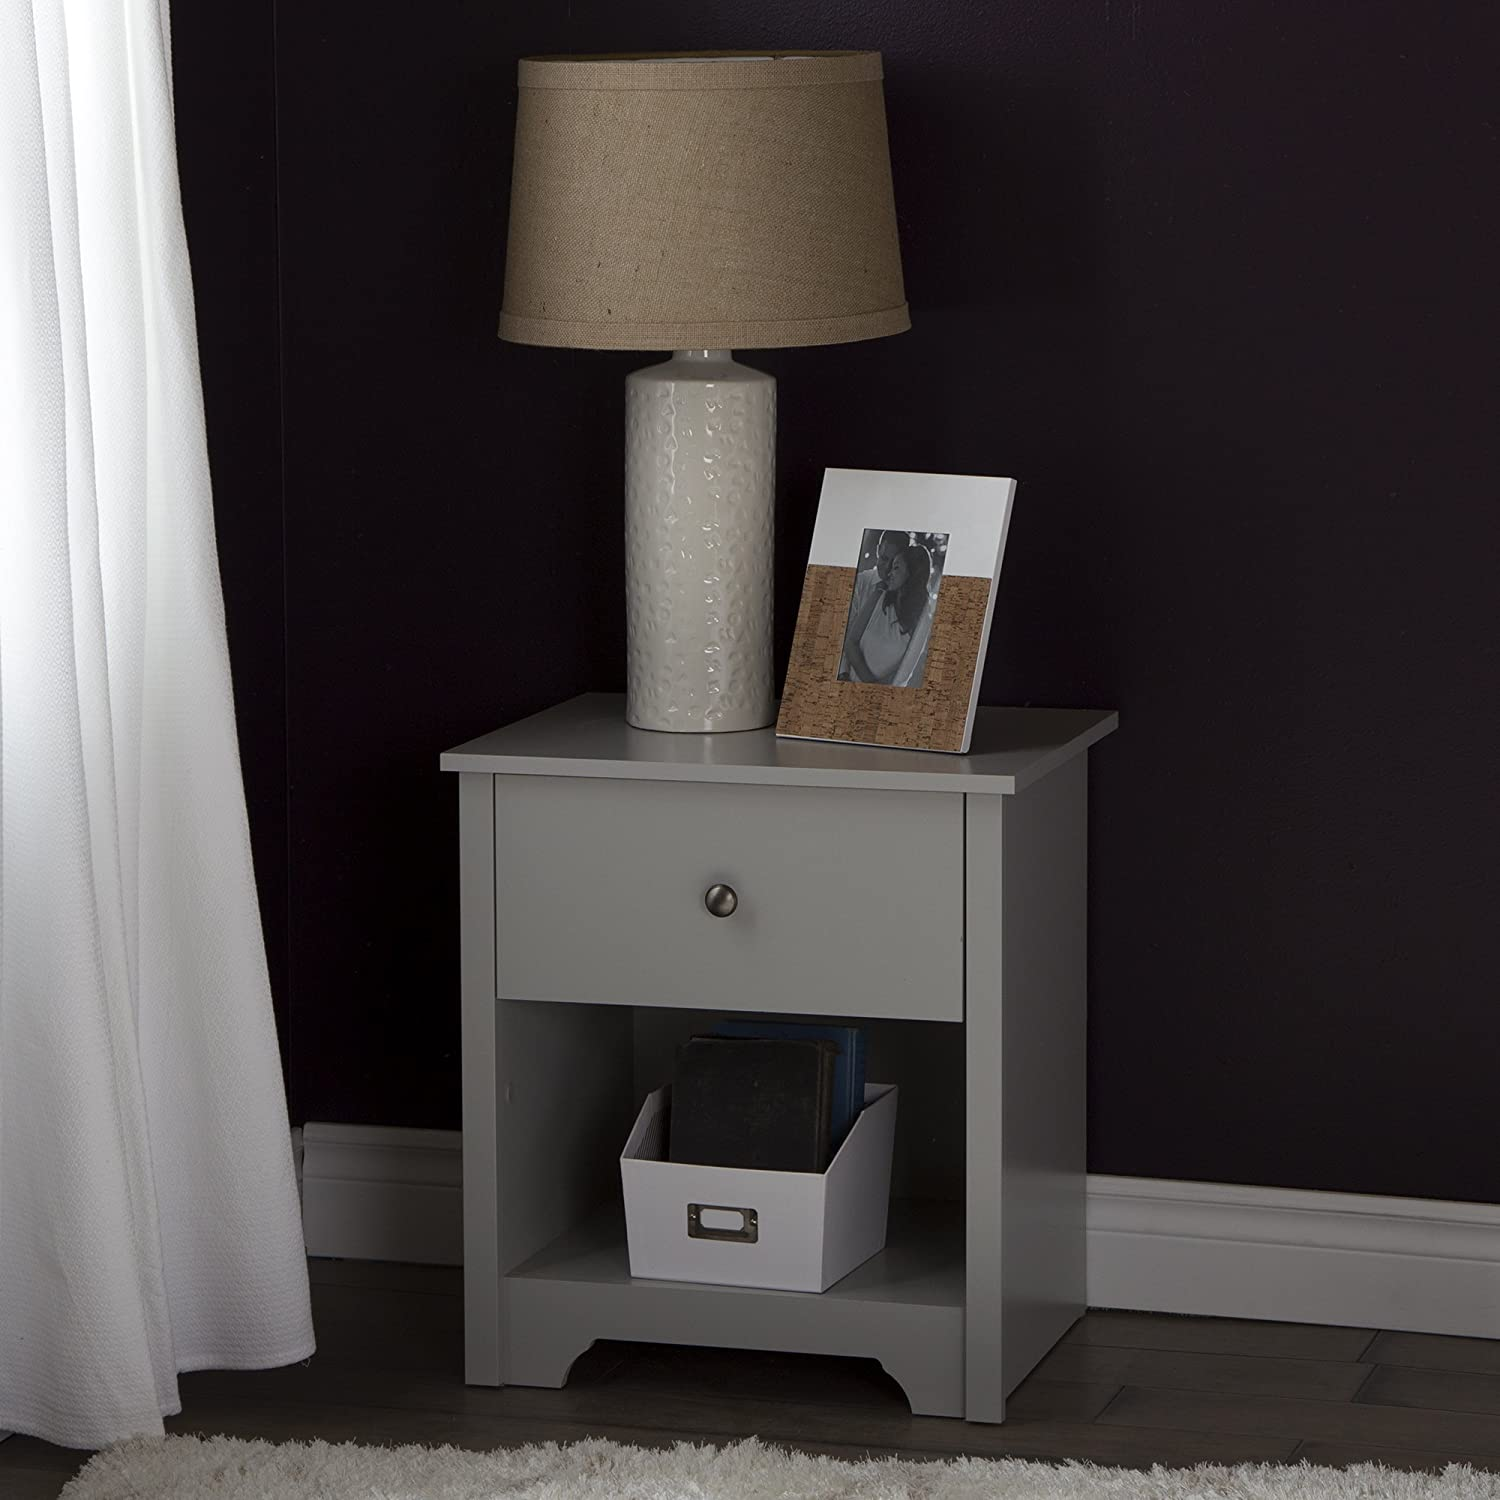 South Shore Furniture Vito 1-Drawer Night Stand, Soft Gray 9021062